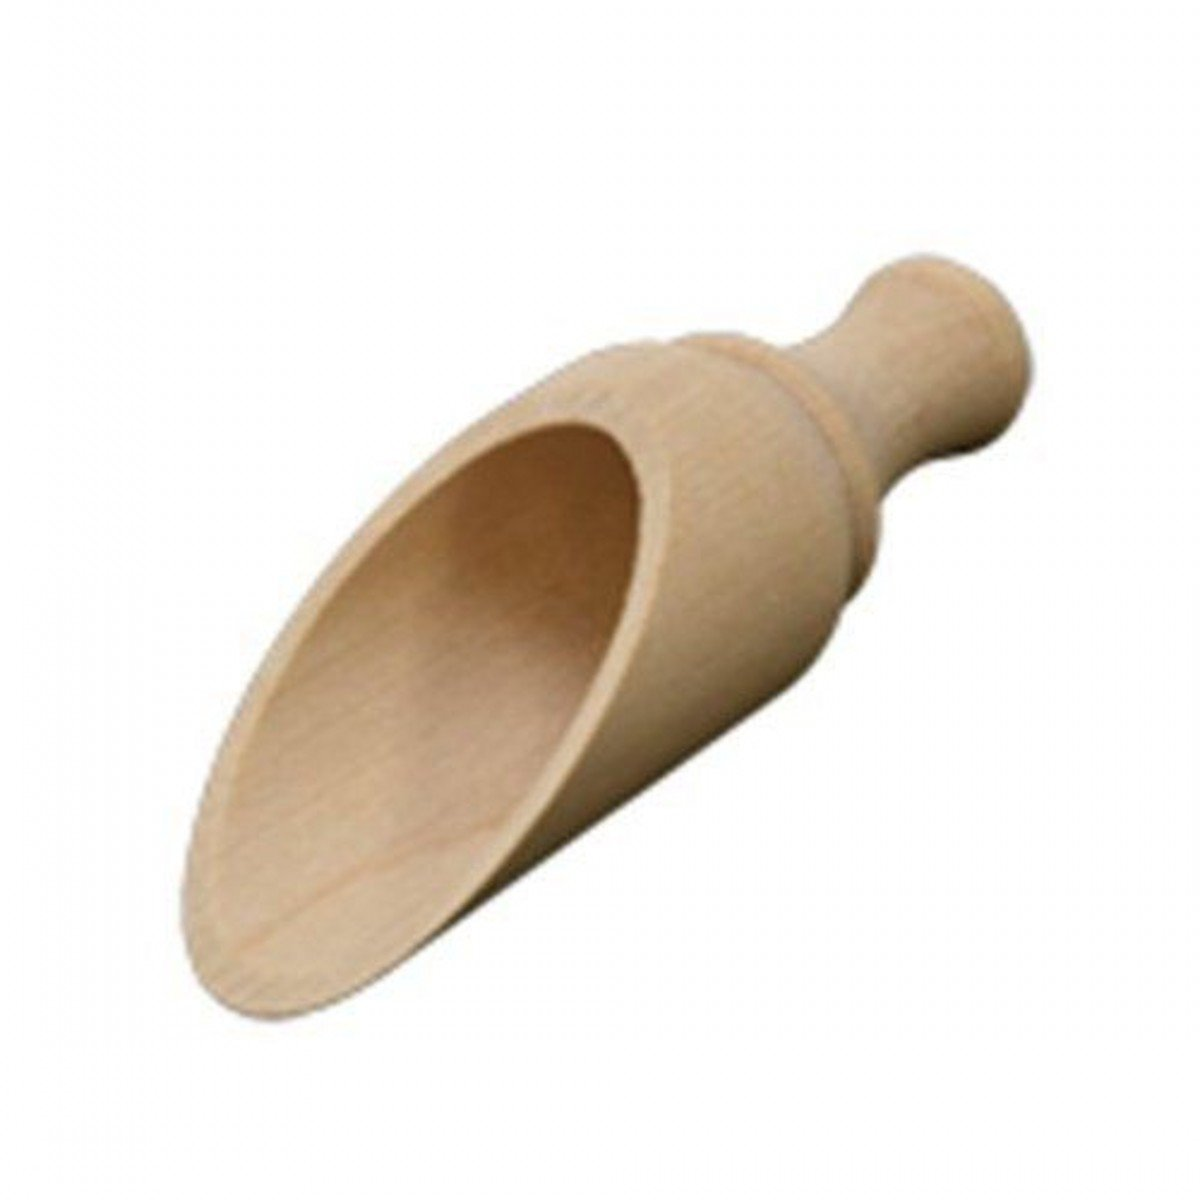 100X Dress My Cupcake Rustic Round Wood Scoop, 3.5-Inch